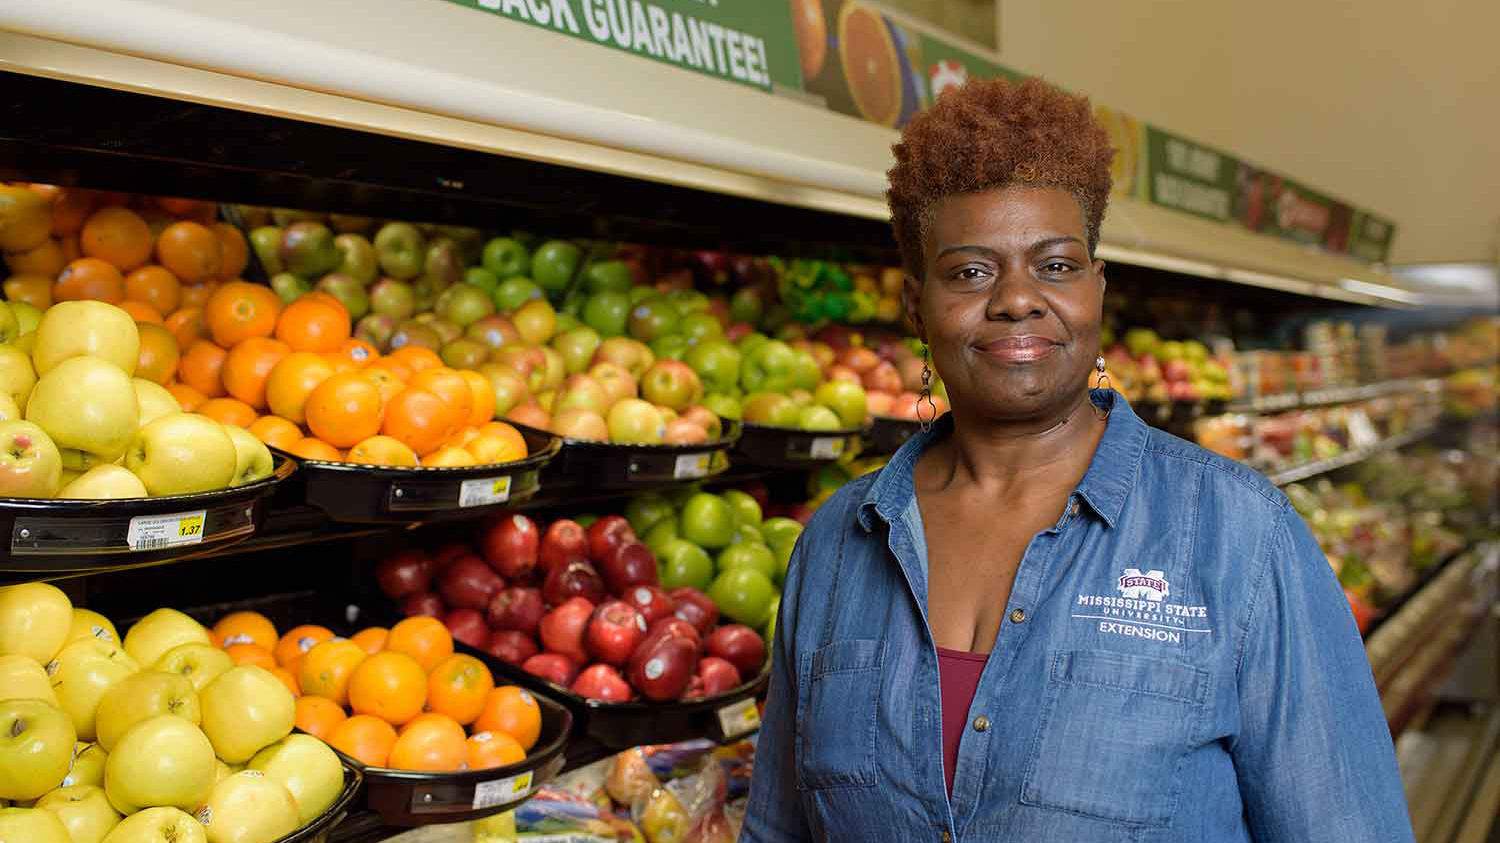 A woman, wearing a denim shirt, smiles in front of a fruit display at a grocery store.